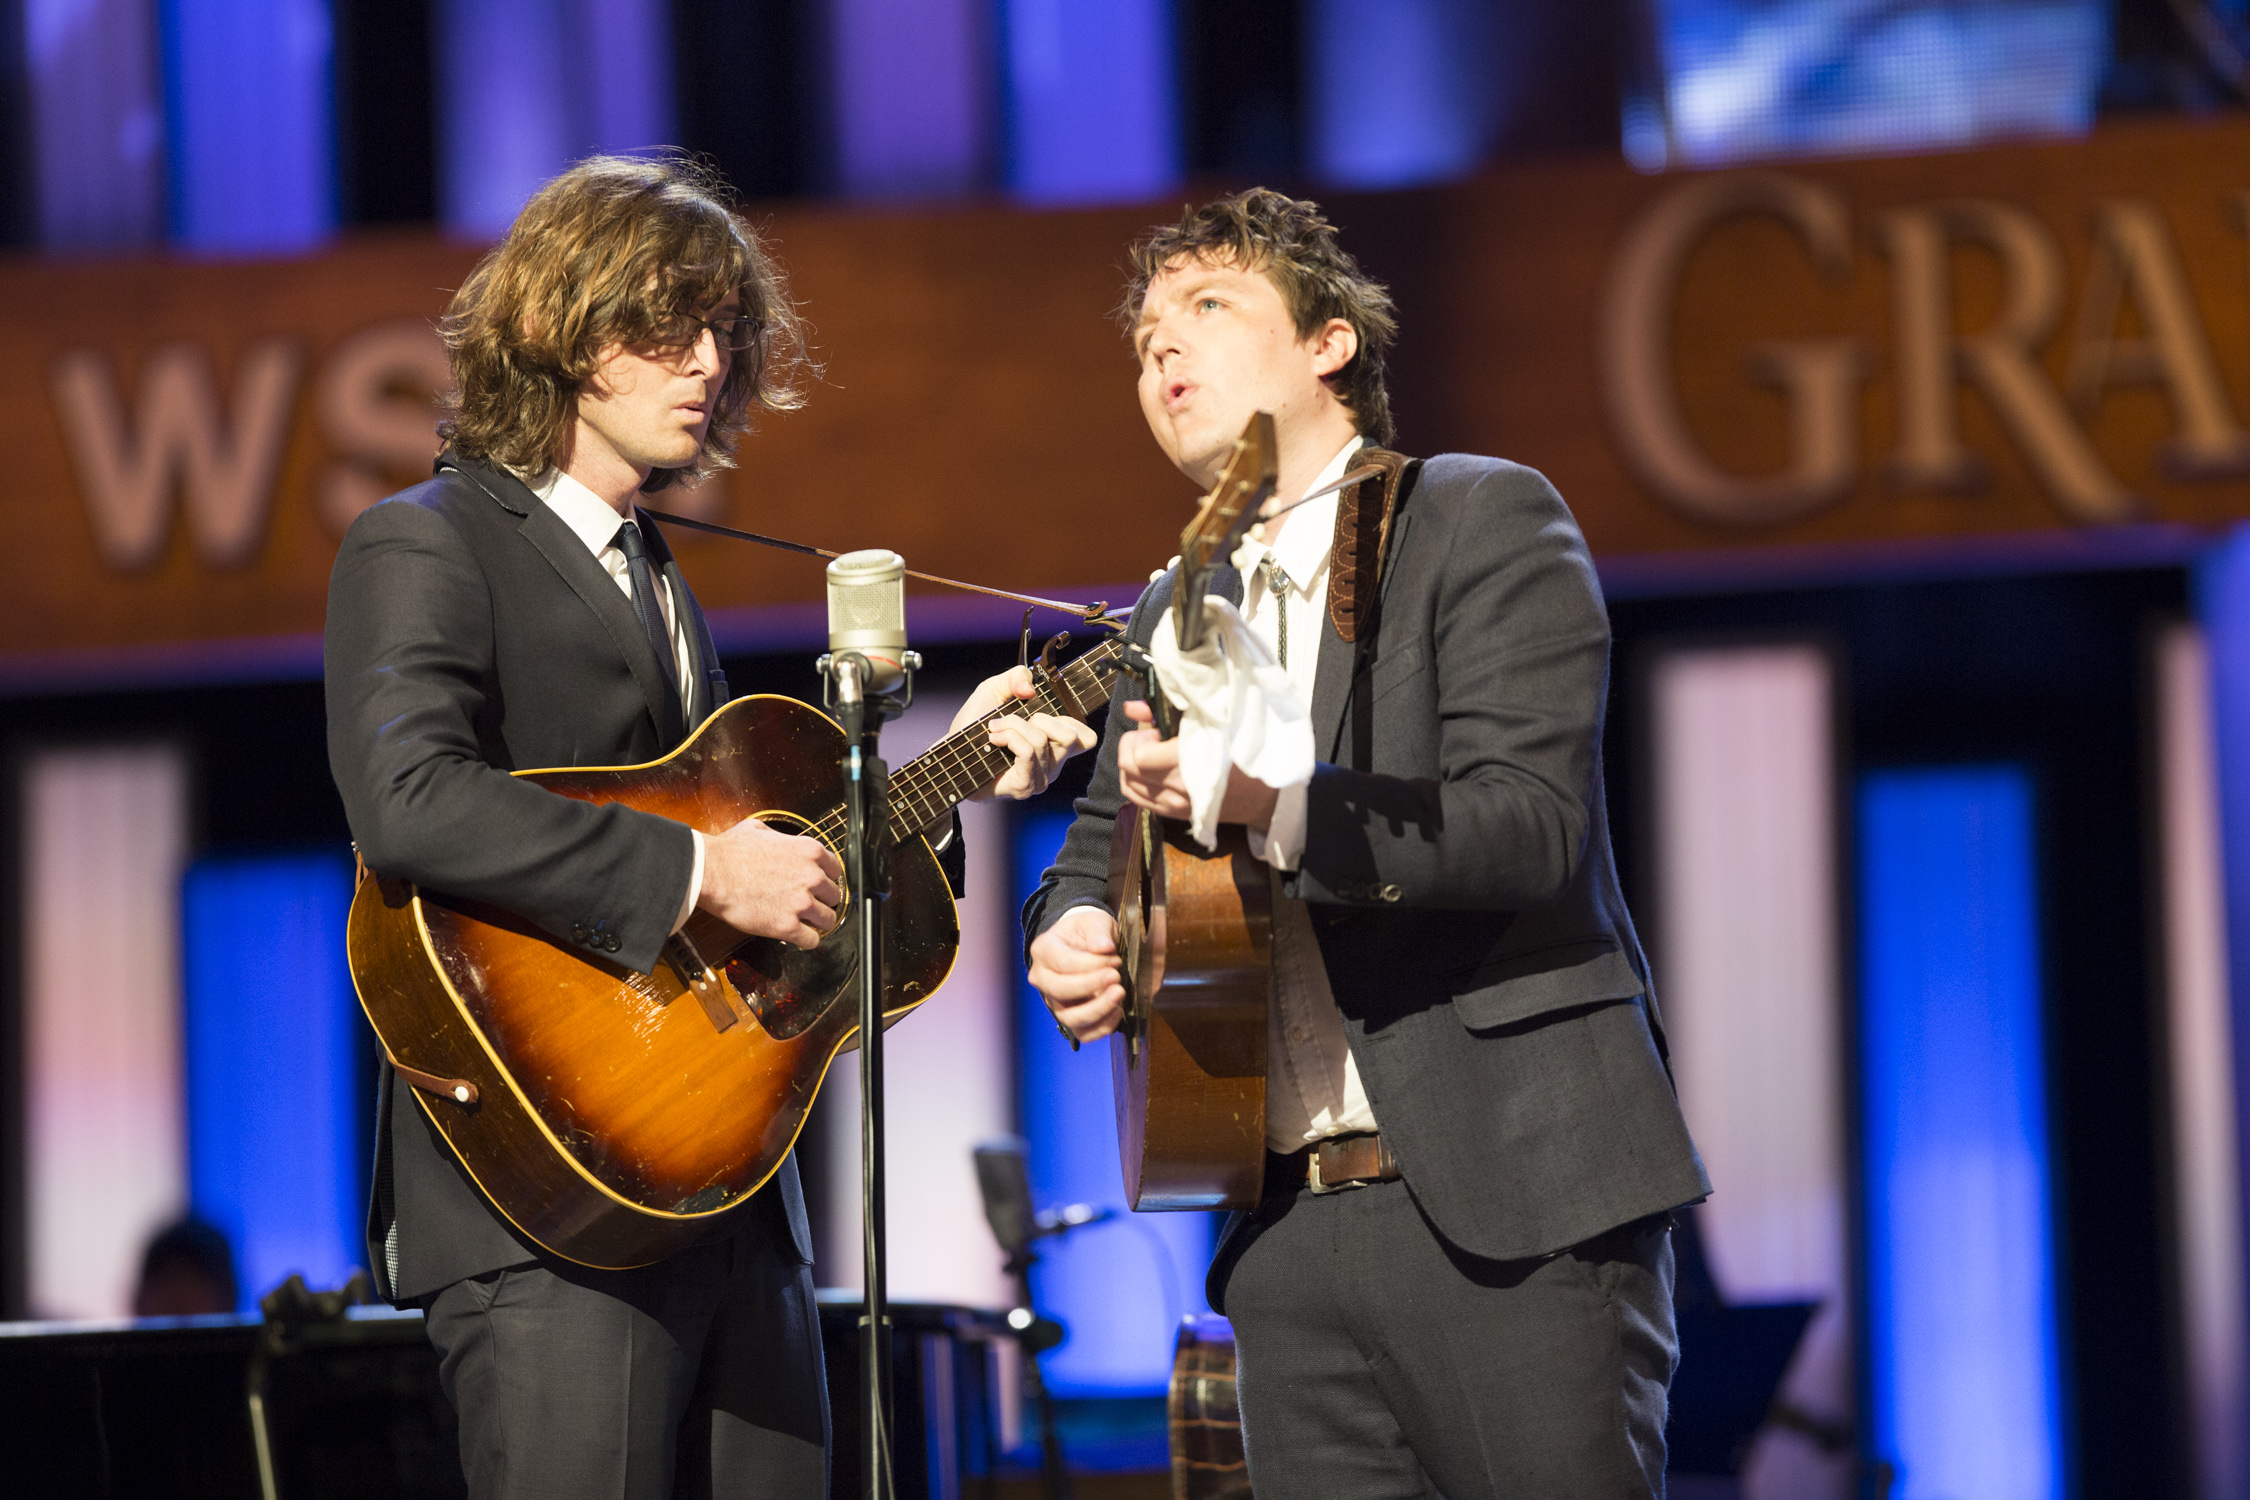 LIVE AT THE OPRY: Milk Carton Kids, 'The City of Our Lady'